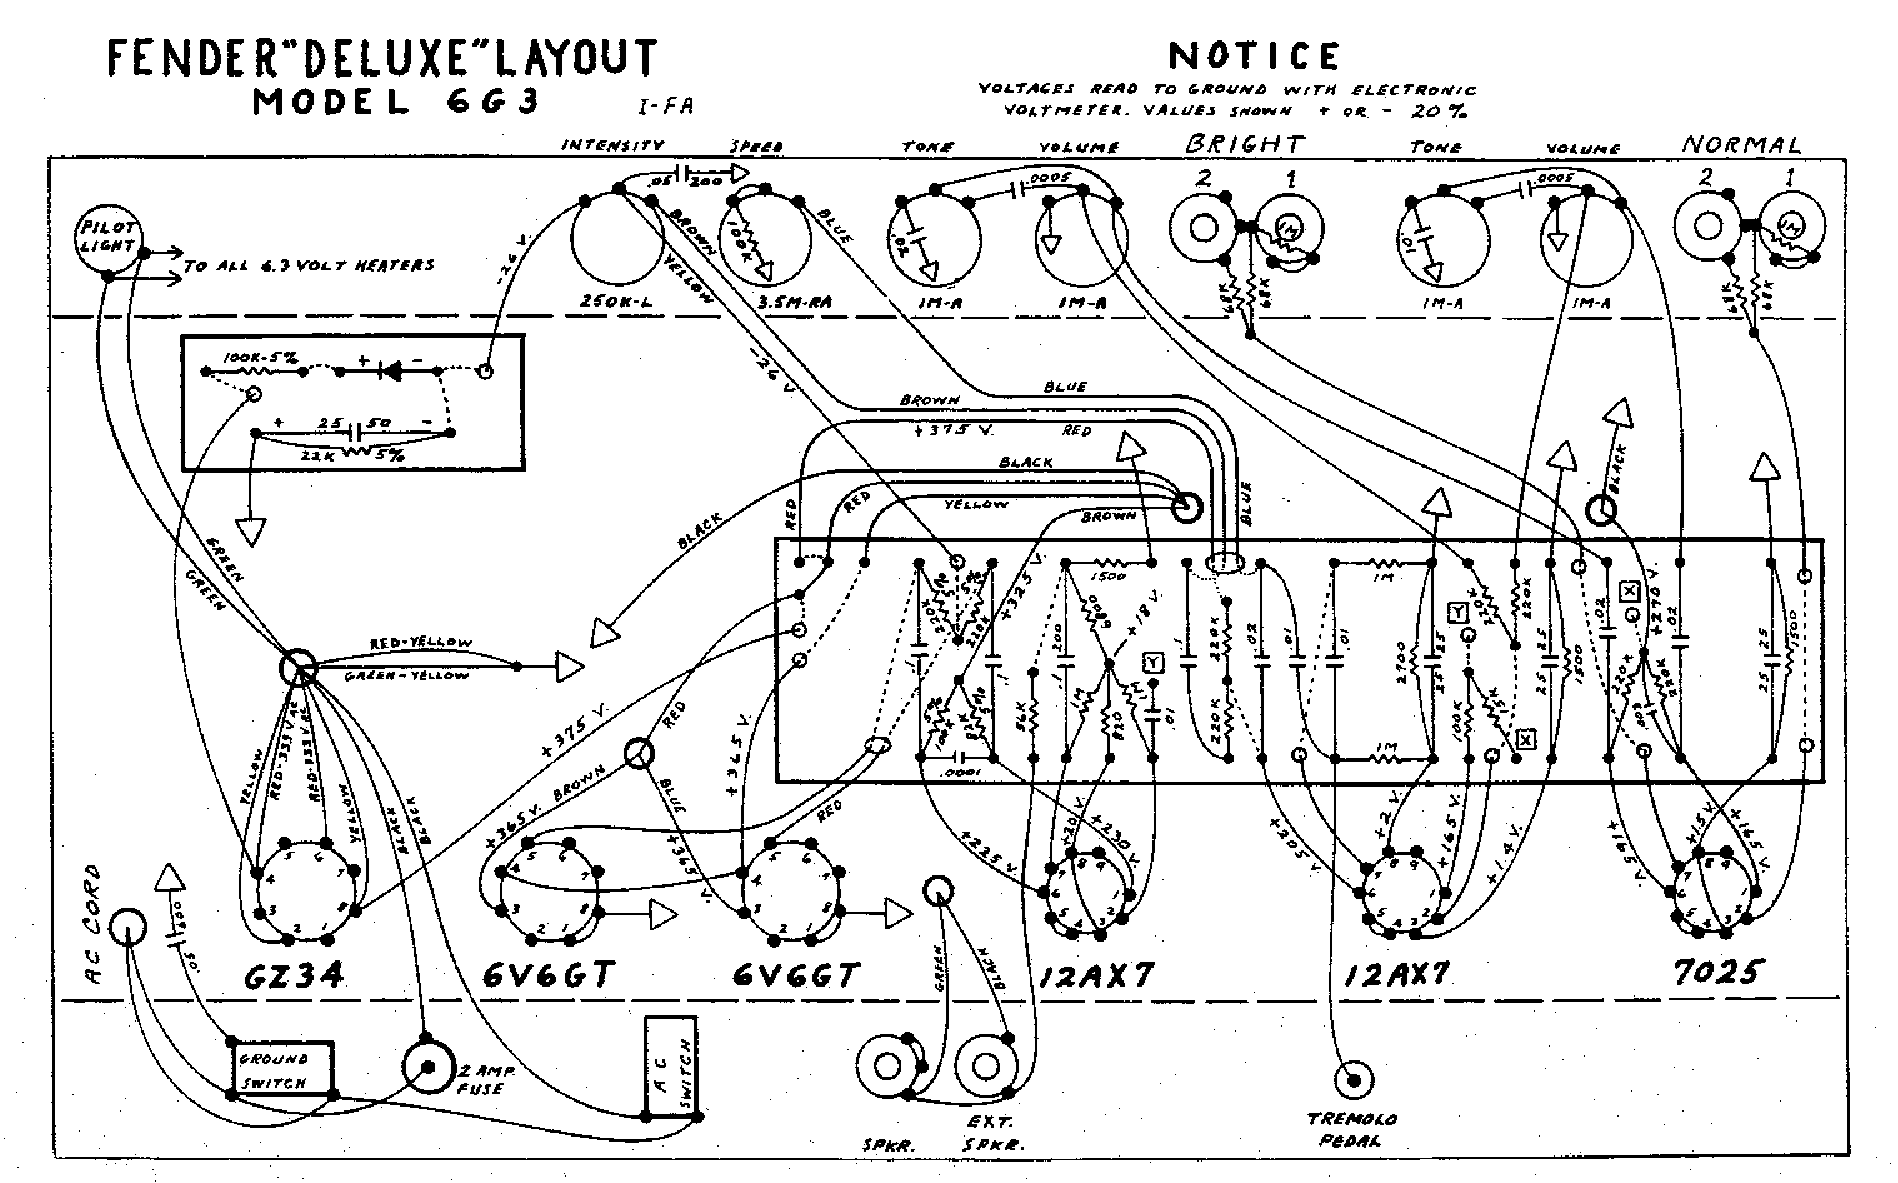 FENDER DELUXE-6G3-LAYOUT Service Manual download